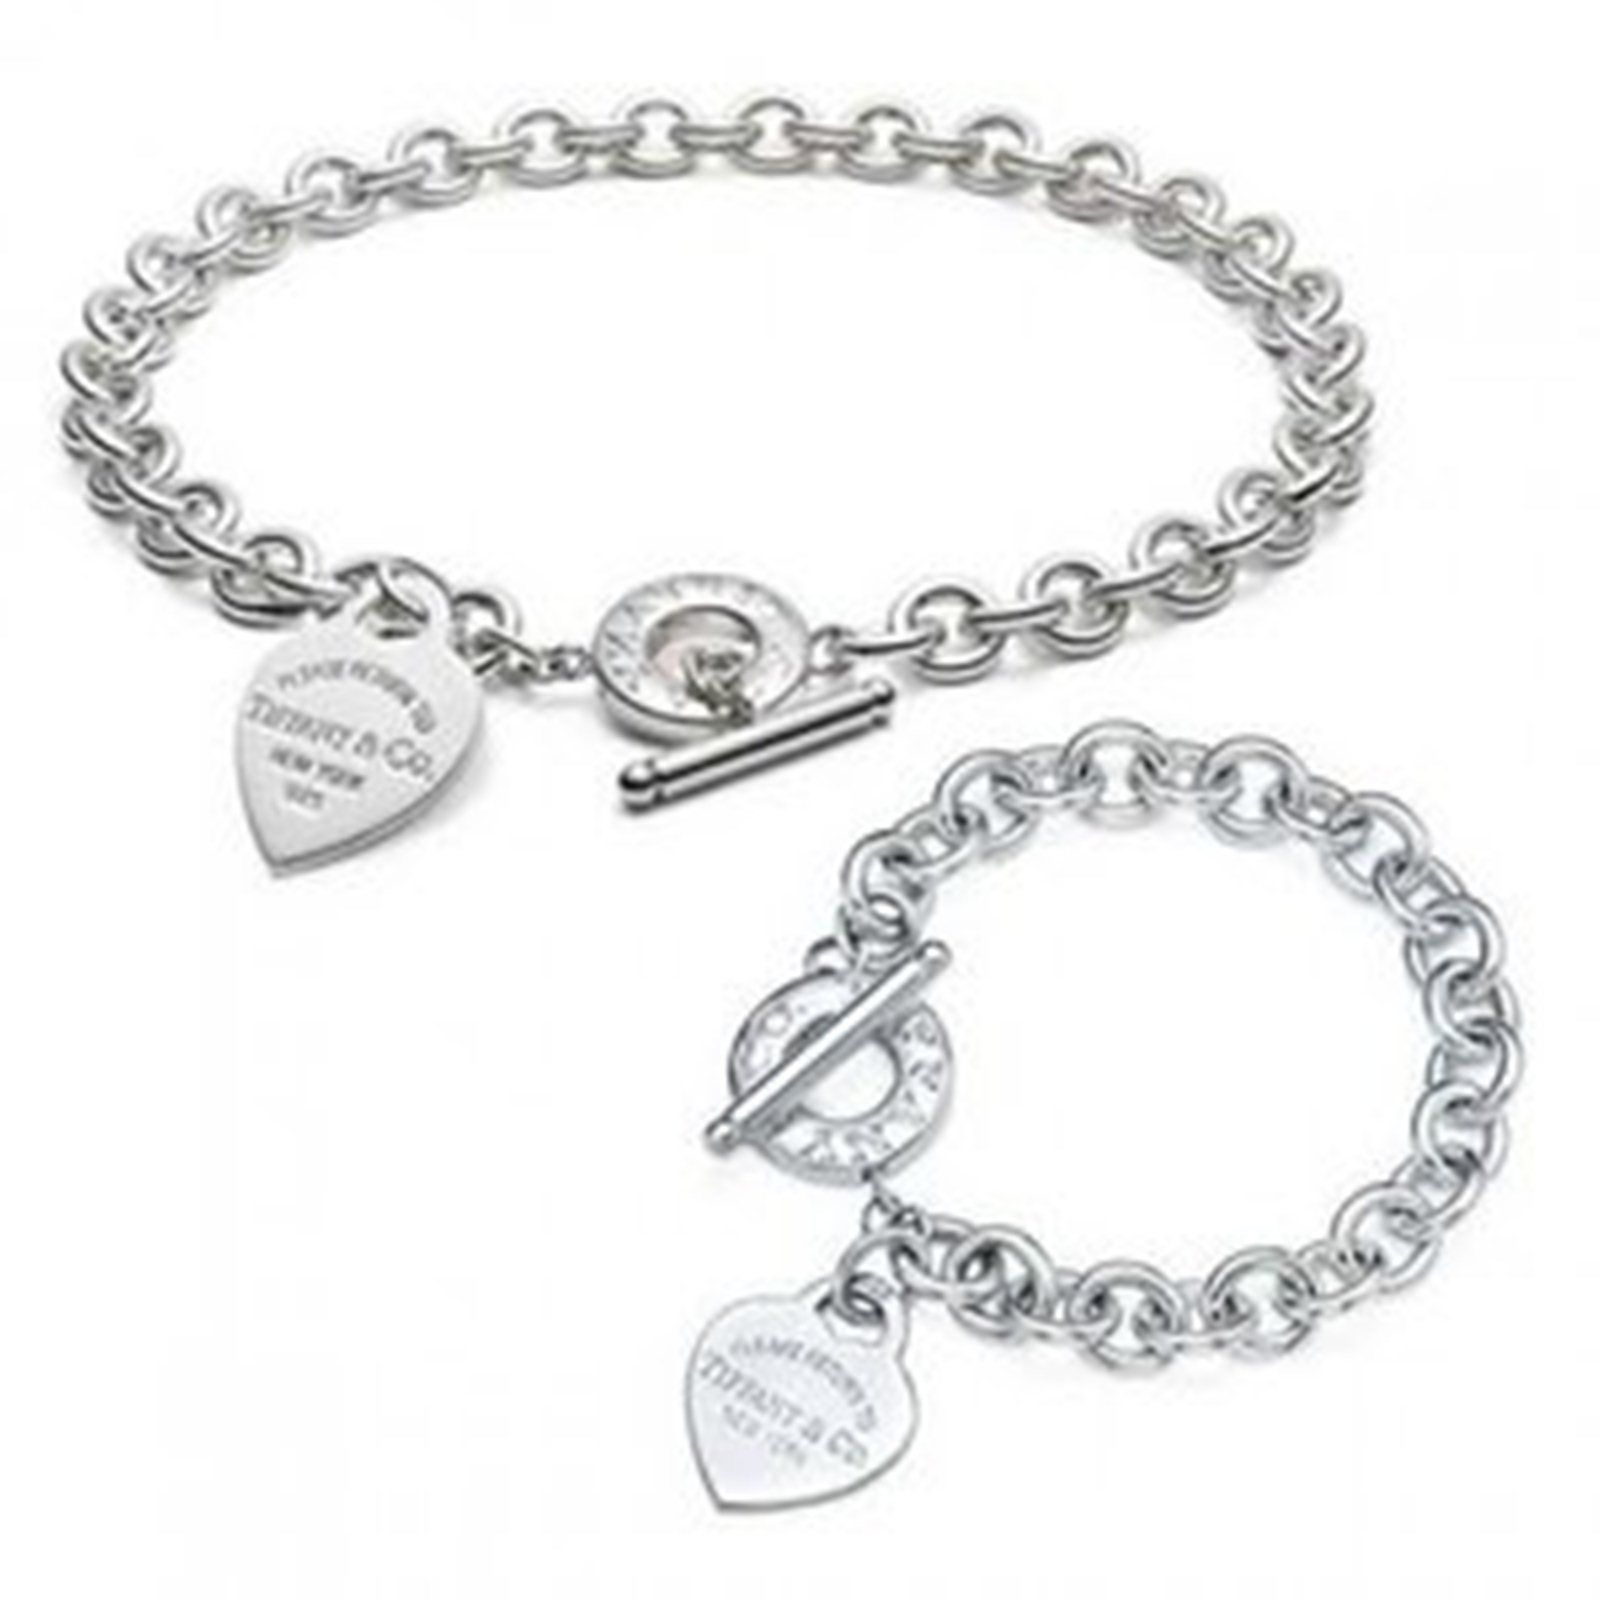 I have wanted this necklace and bracelet since Legally